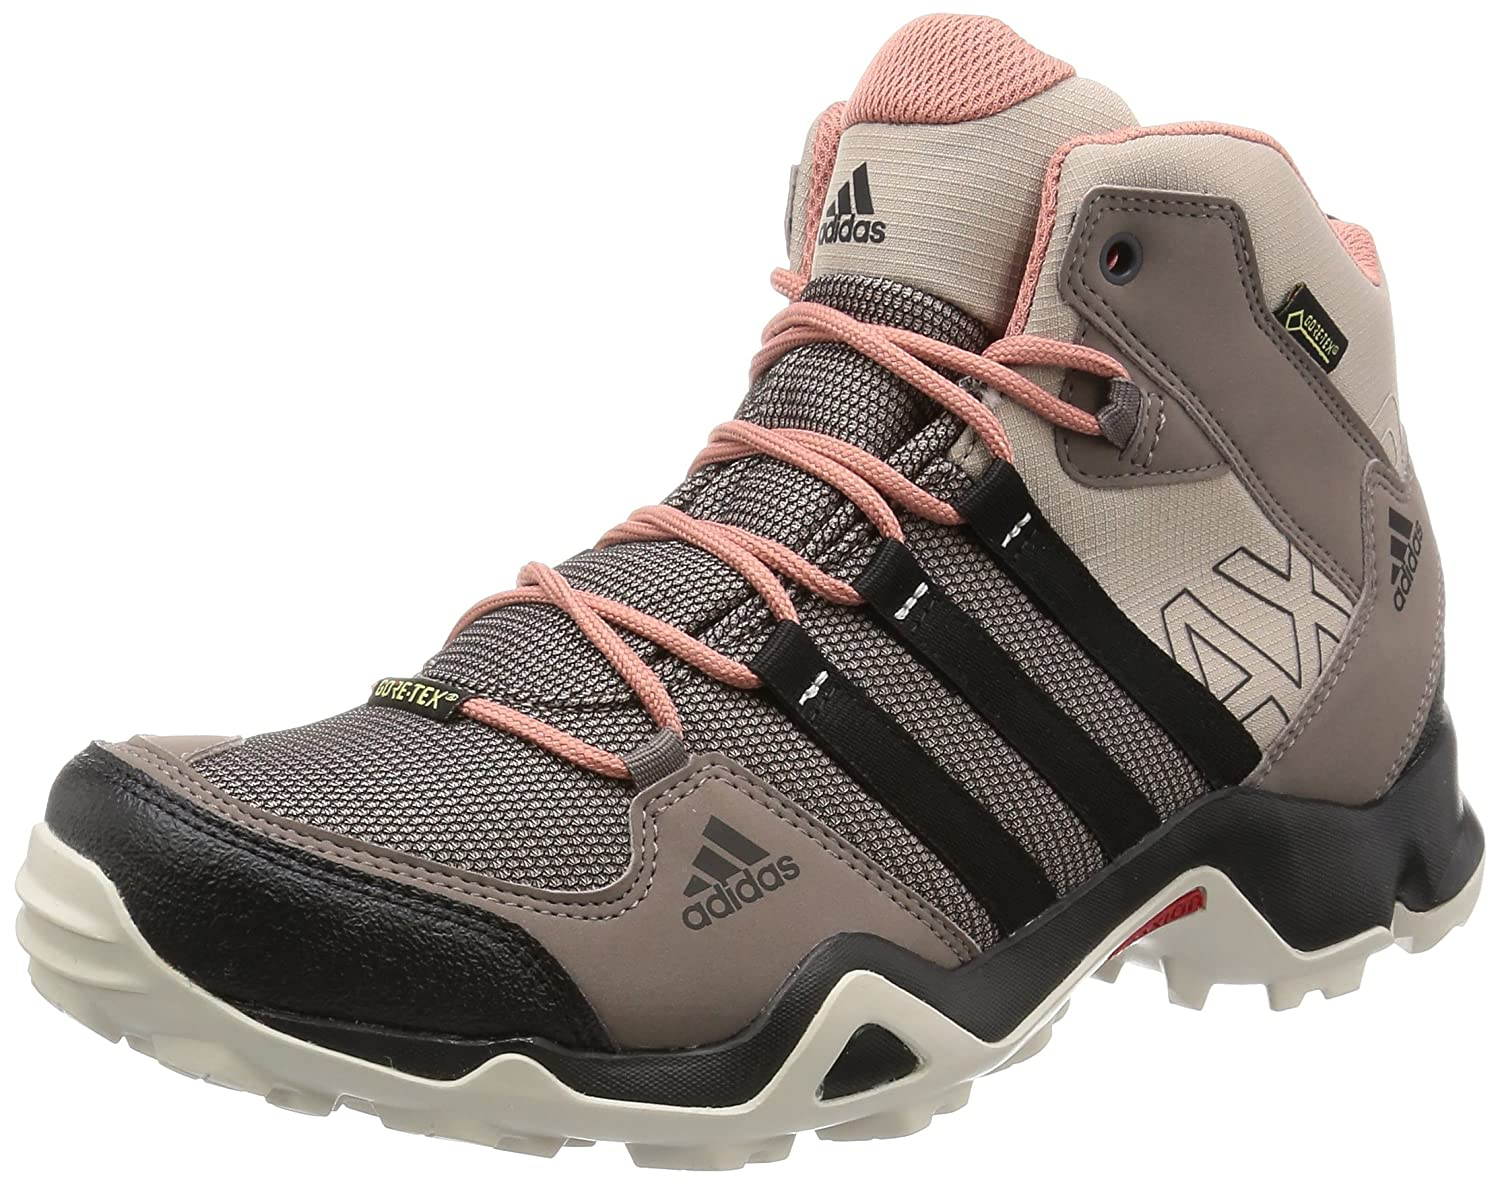 112c97776627 adidas AX2 MID GTX W Boots for Women